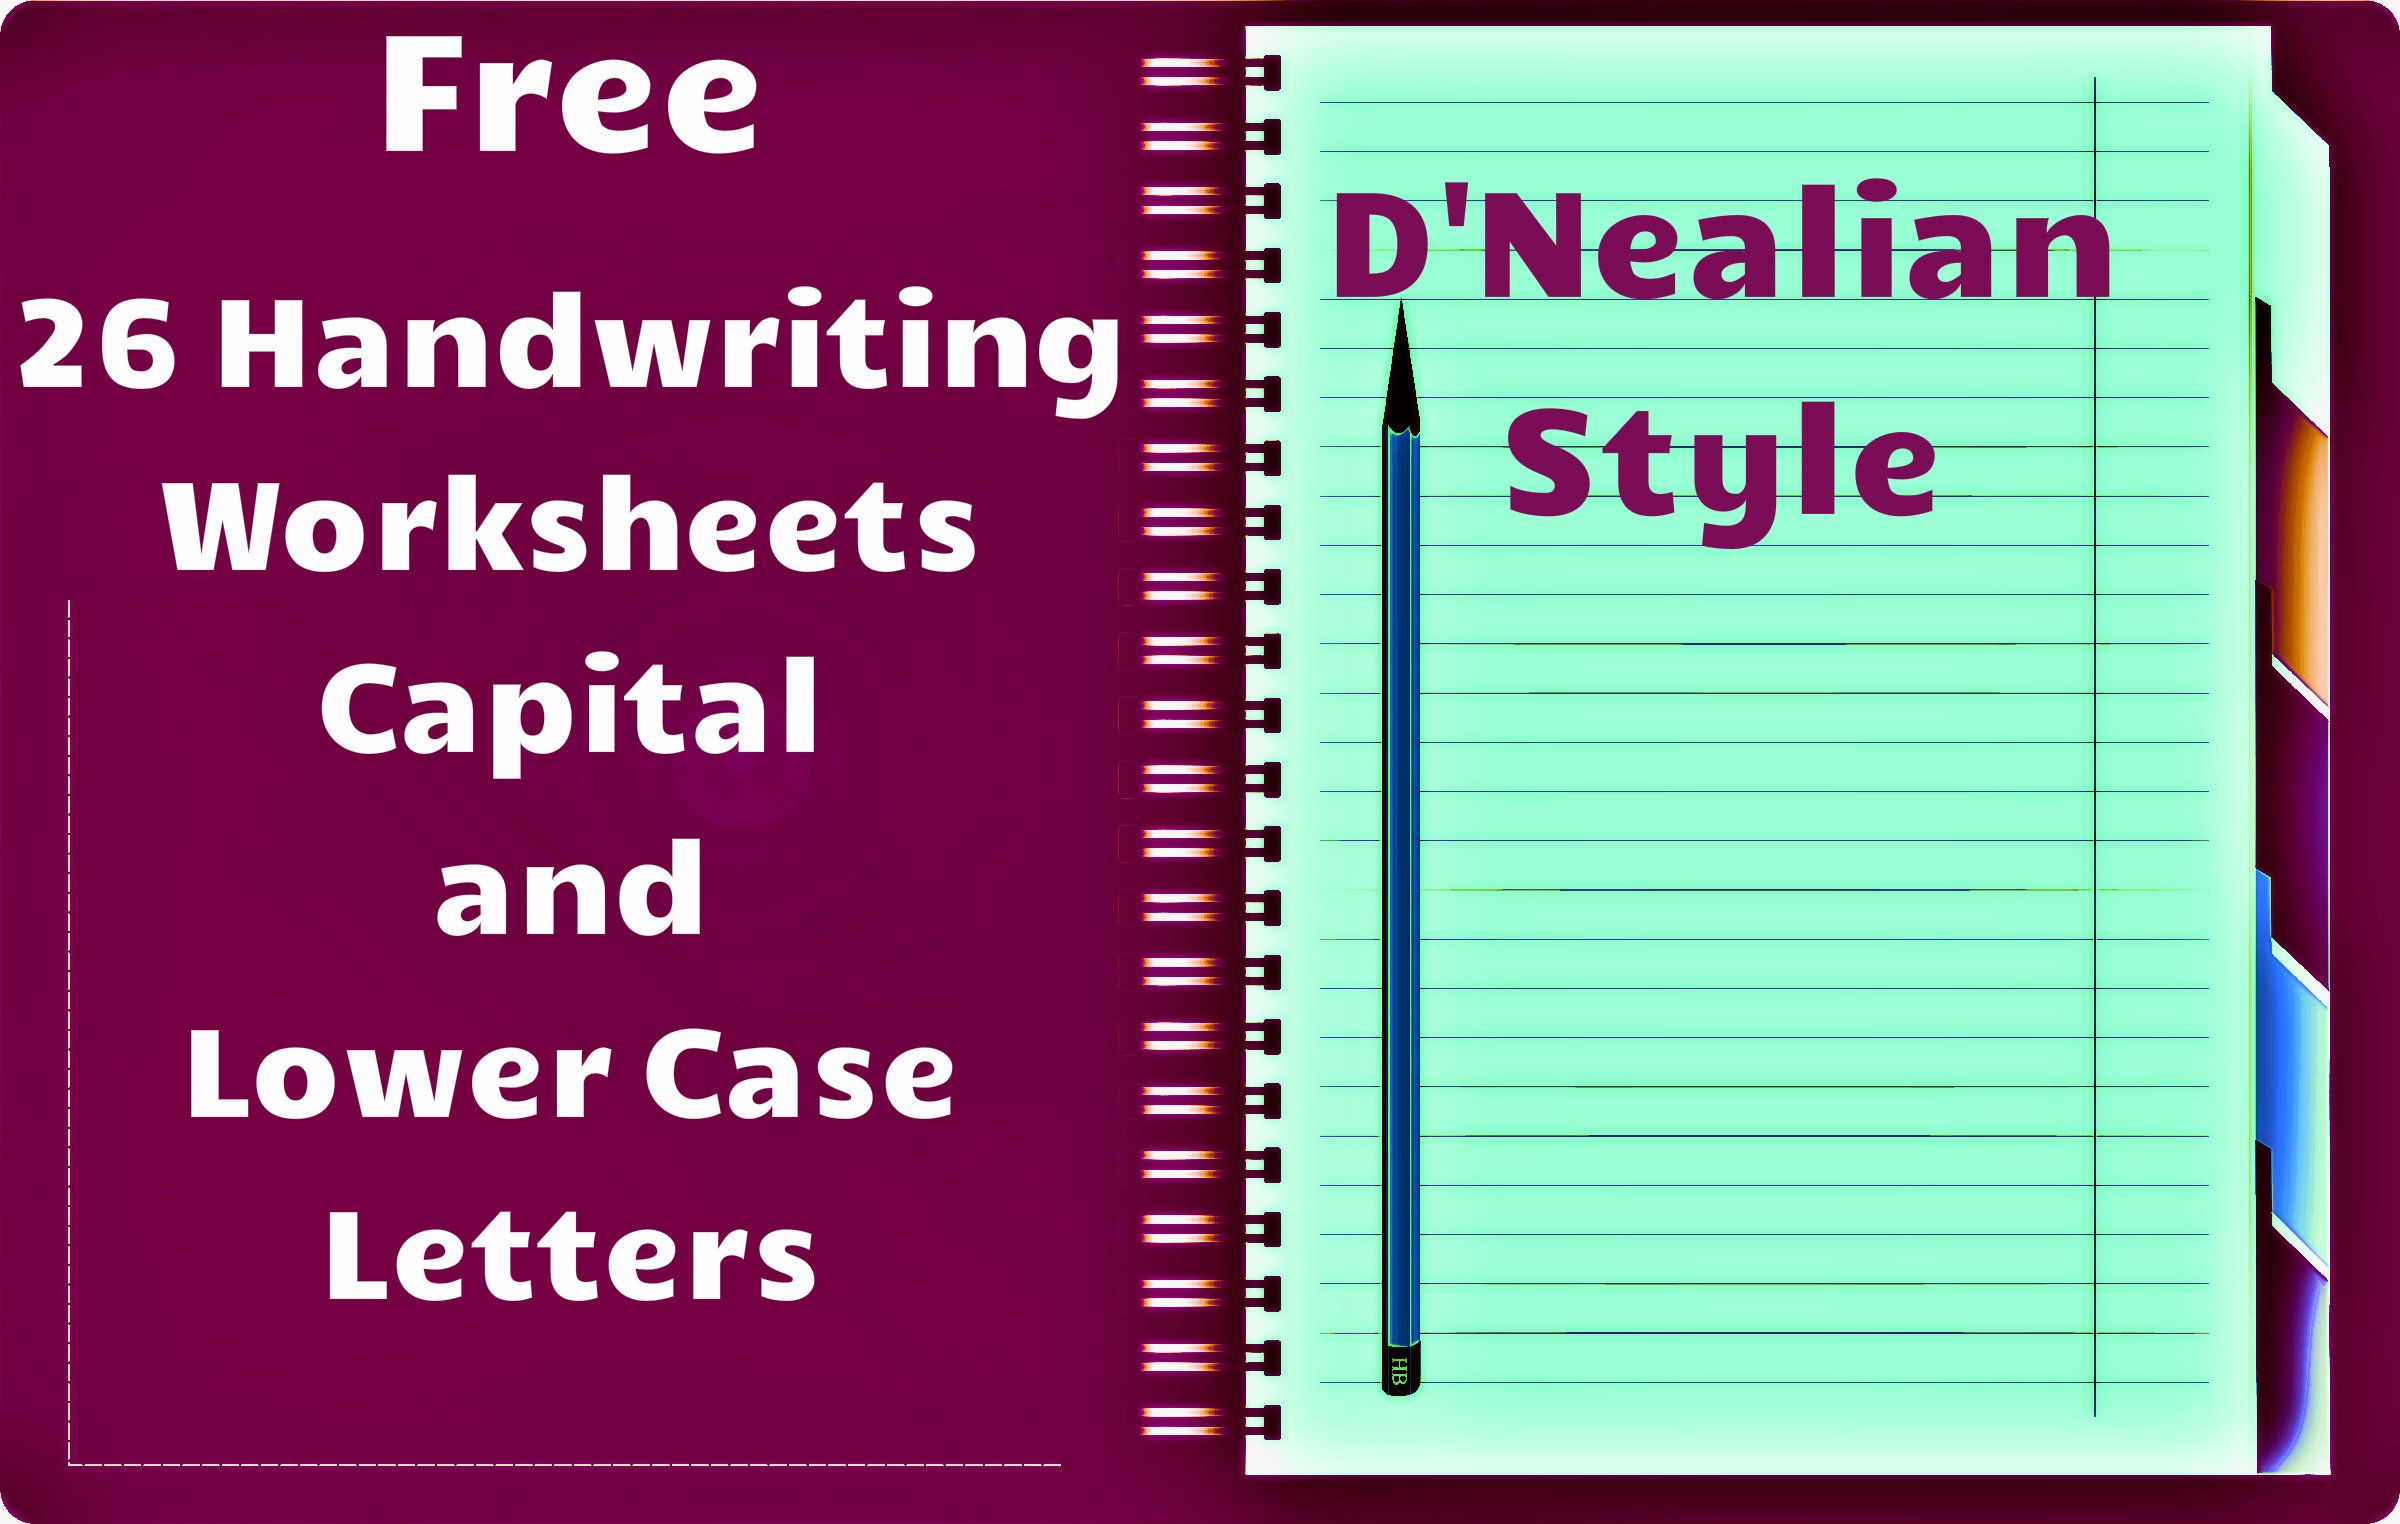 Free Handwriting Worksheets Includes Worksheets For All